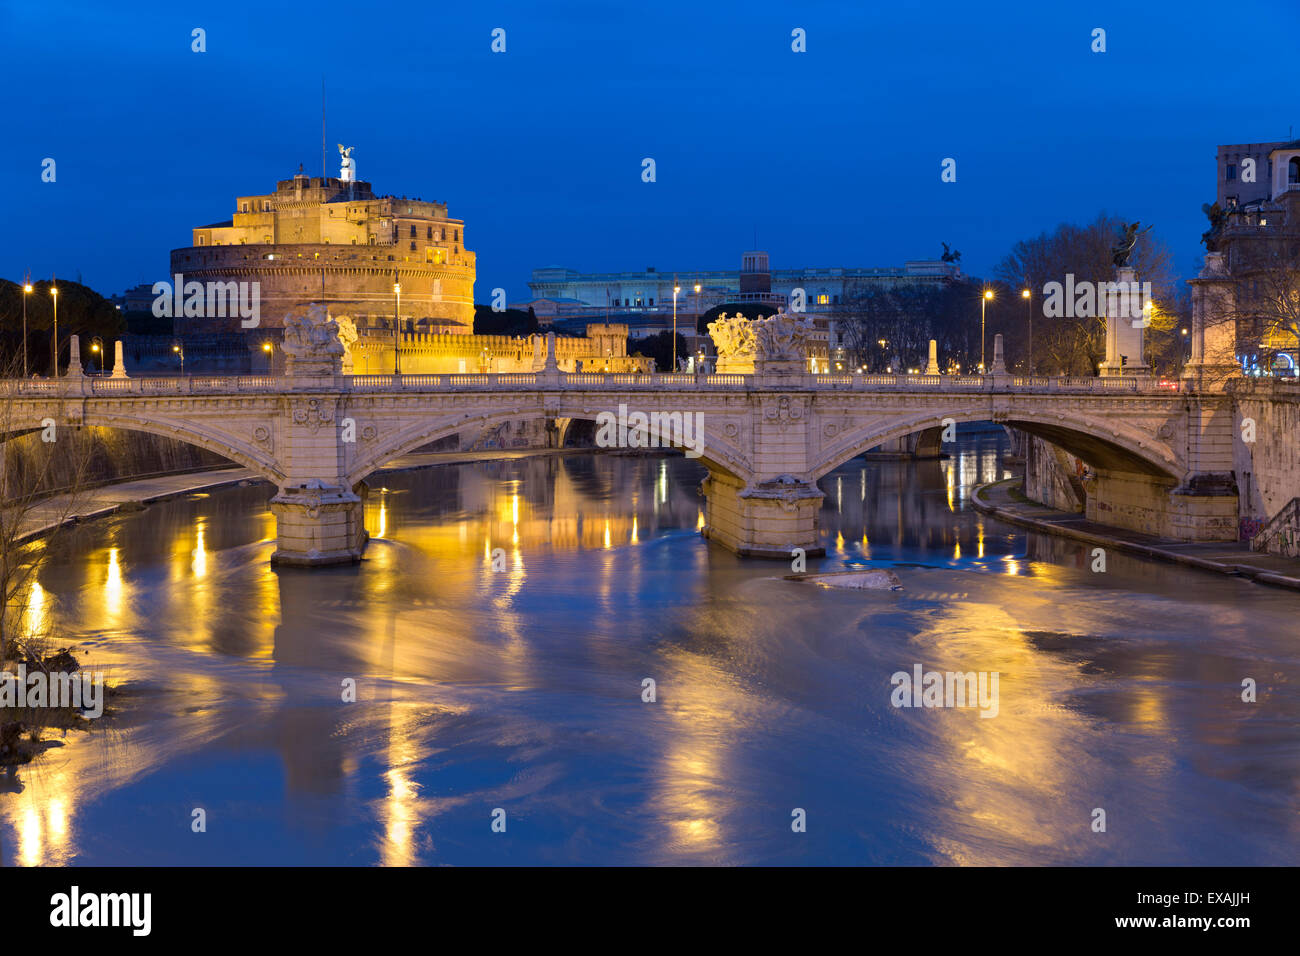 Castel Sant'Angelo and Ponte Vittorio Emanuelle II on the River Tiber at night, Rome, Lazio, Italy, Europe - Stock Image